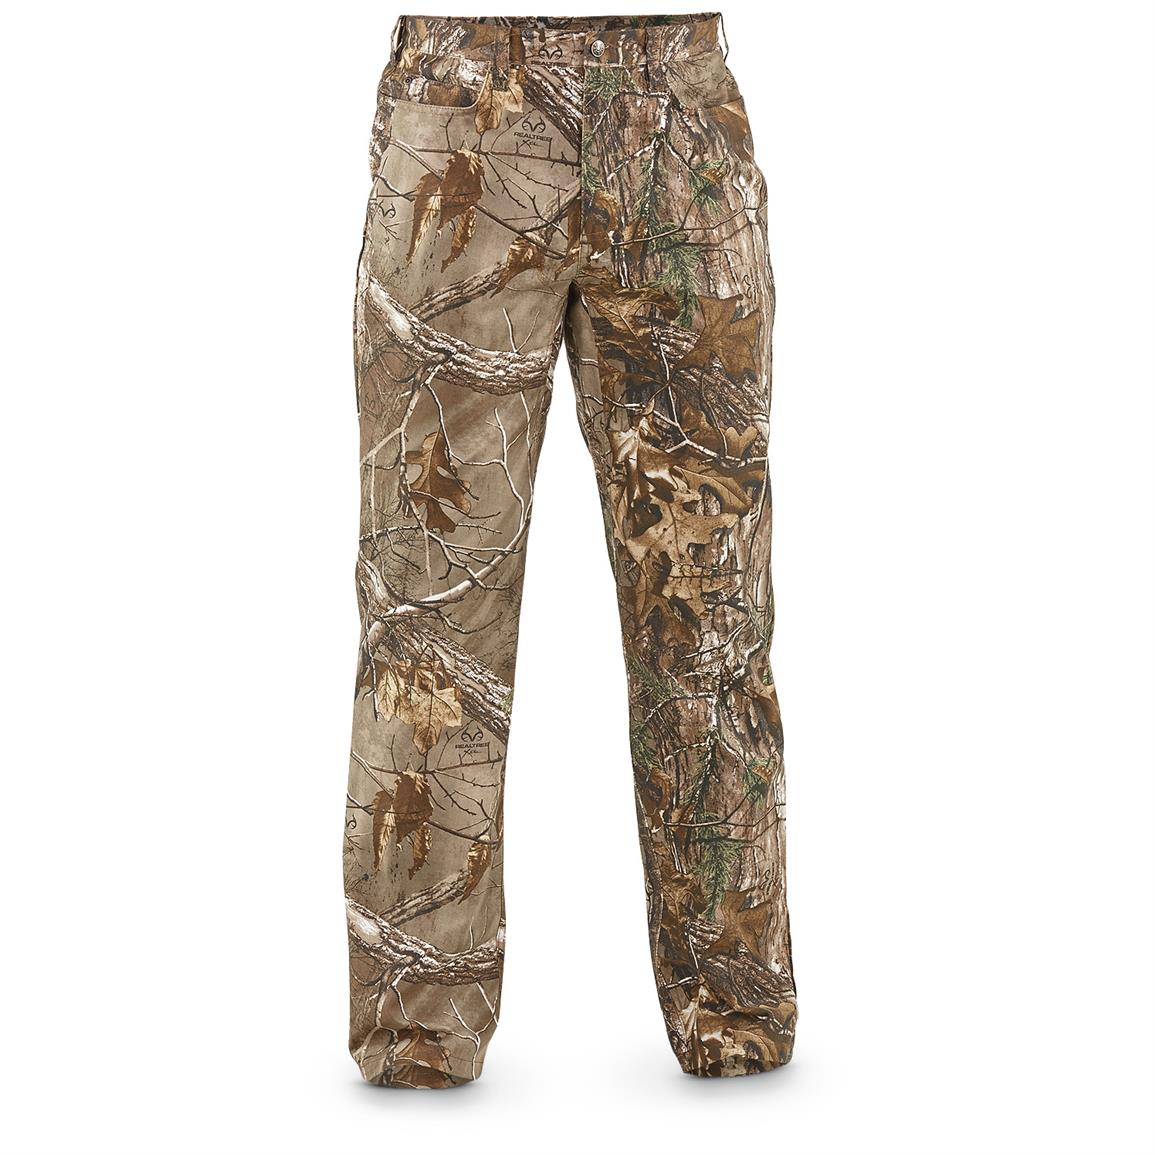 Guide Gear Camo 5-Pocket Jeans, Realtree Xtra